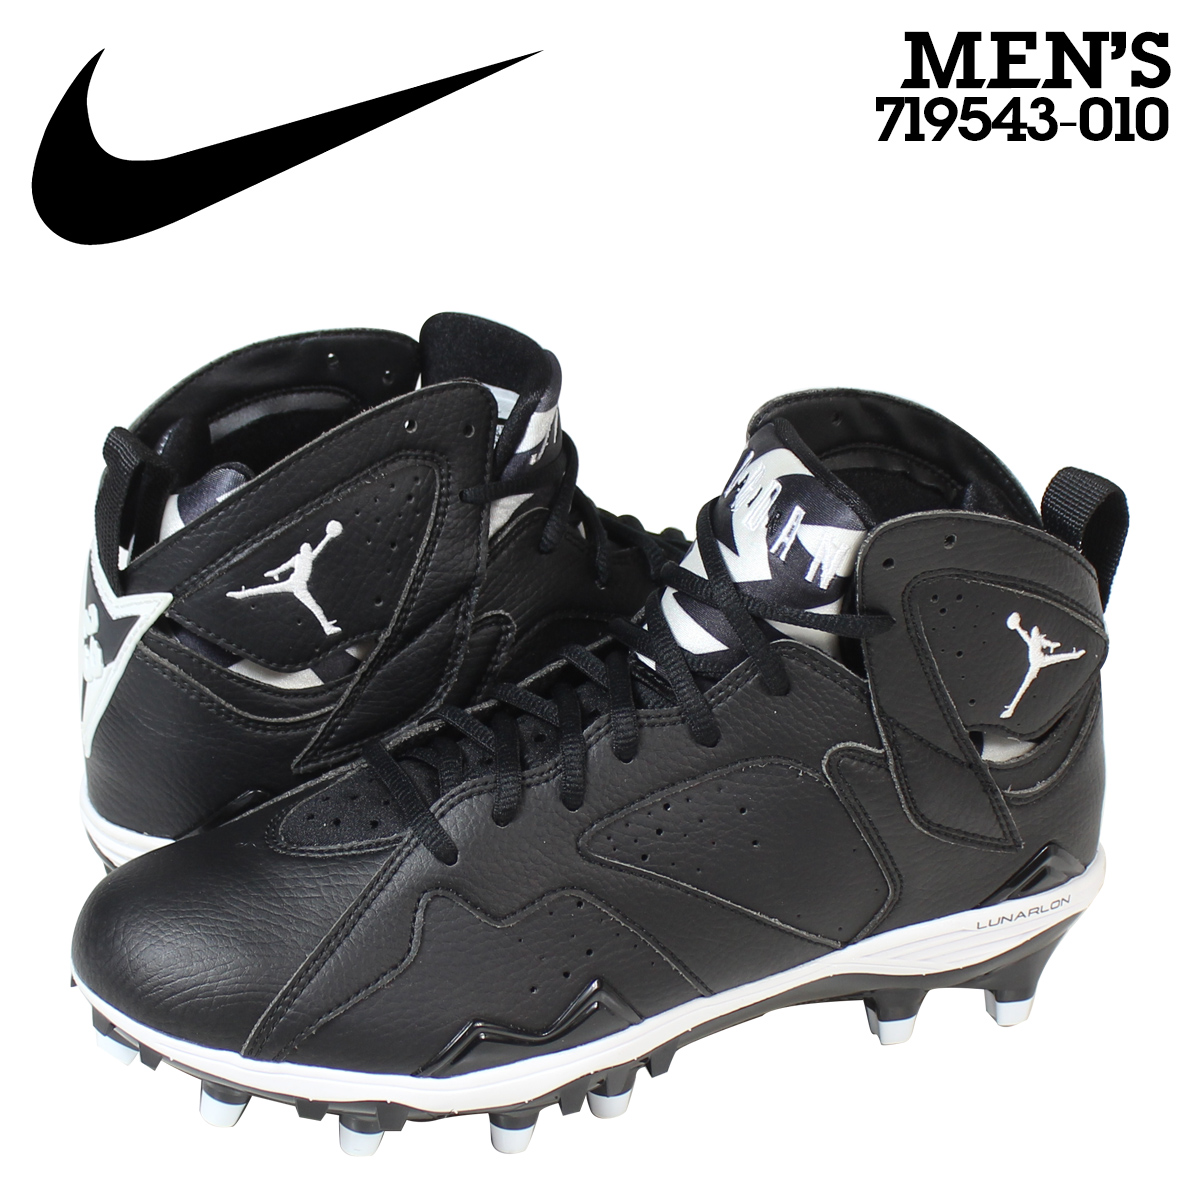 3243713e6a5cab ... Metal  Black Baseball Cleat Men s Us Nike NIKE Air Jordan spike soccer  football shoes JORDAN RETRO 7 TD Air Jordan retro 719543 ...